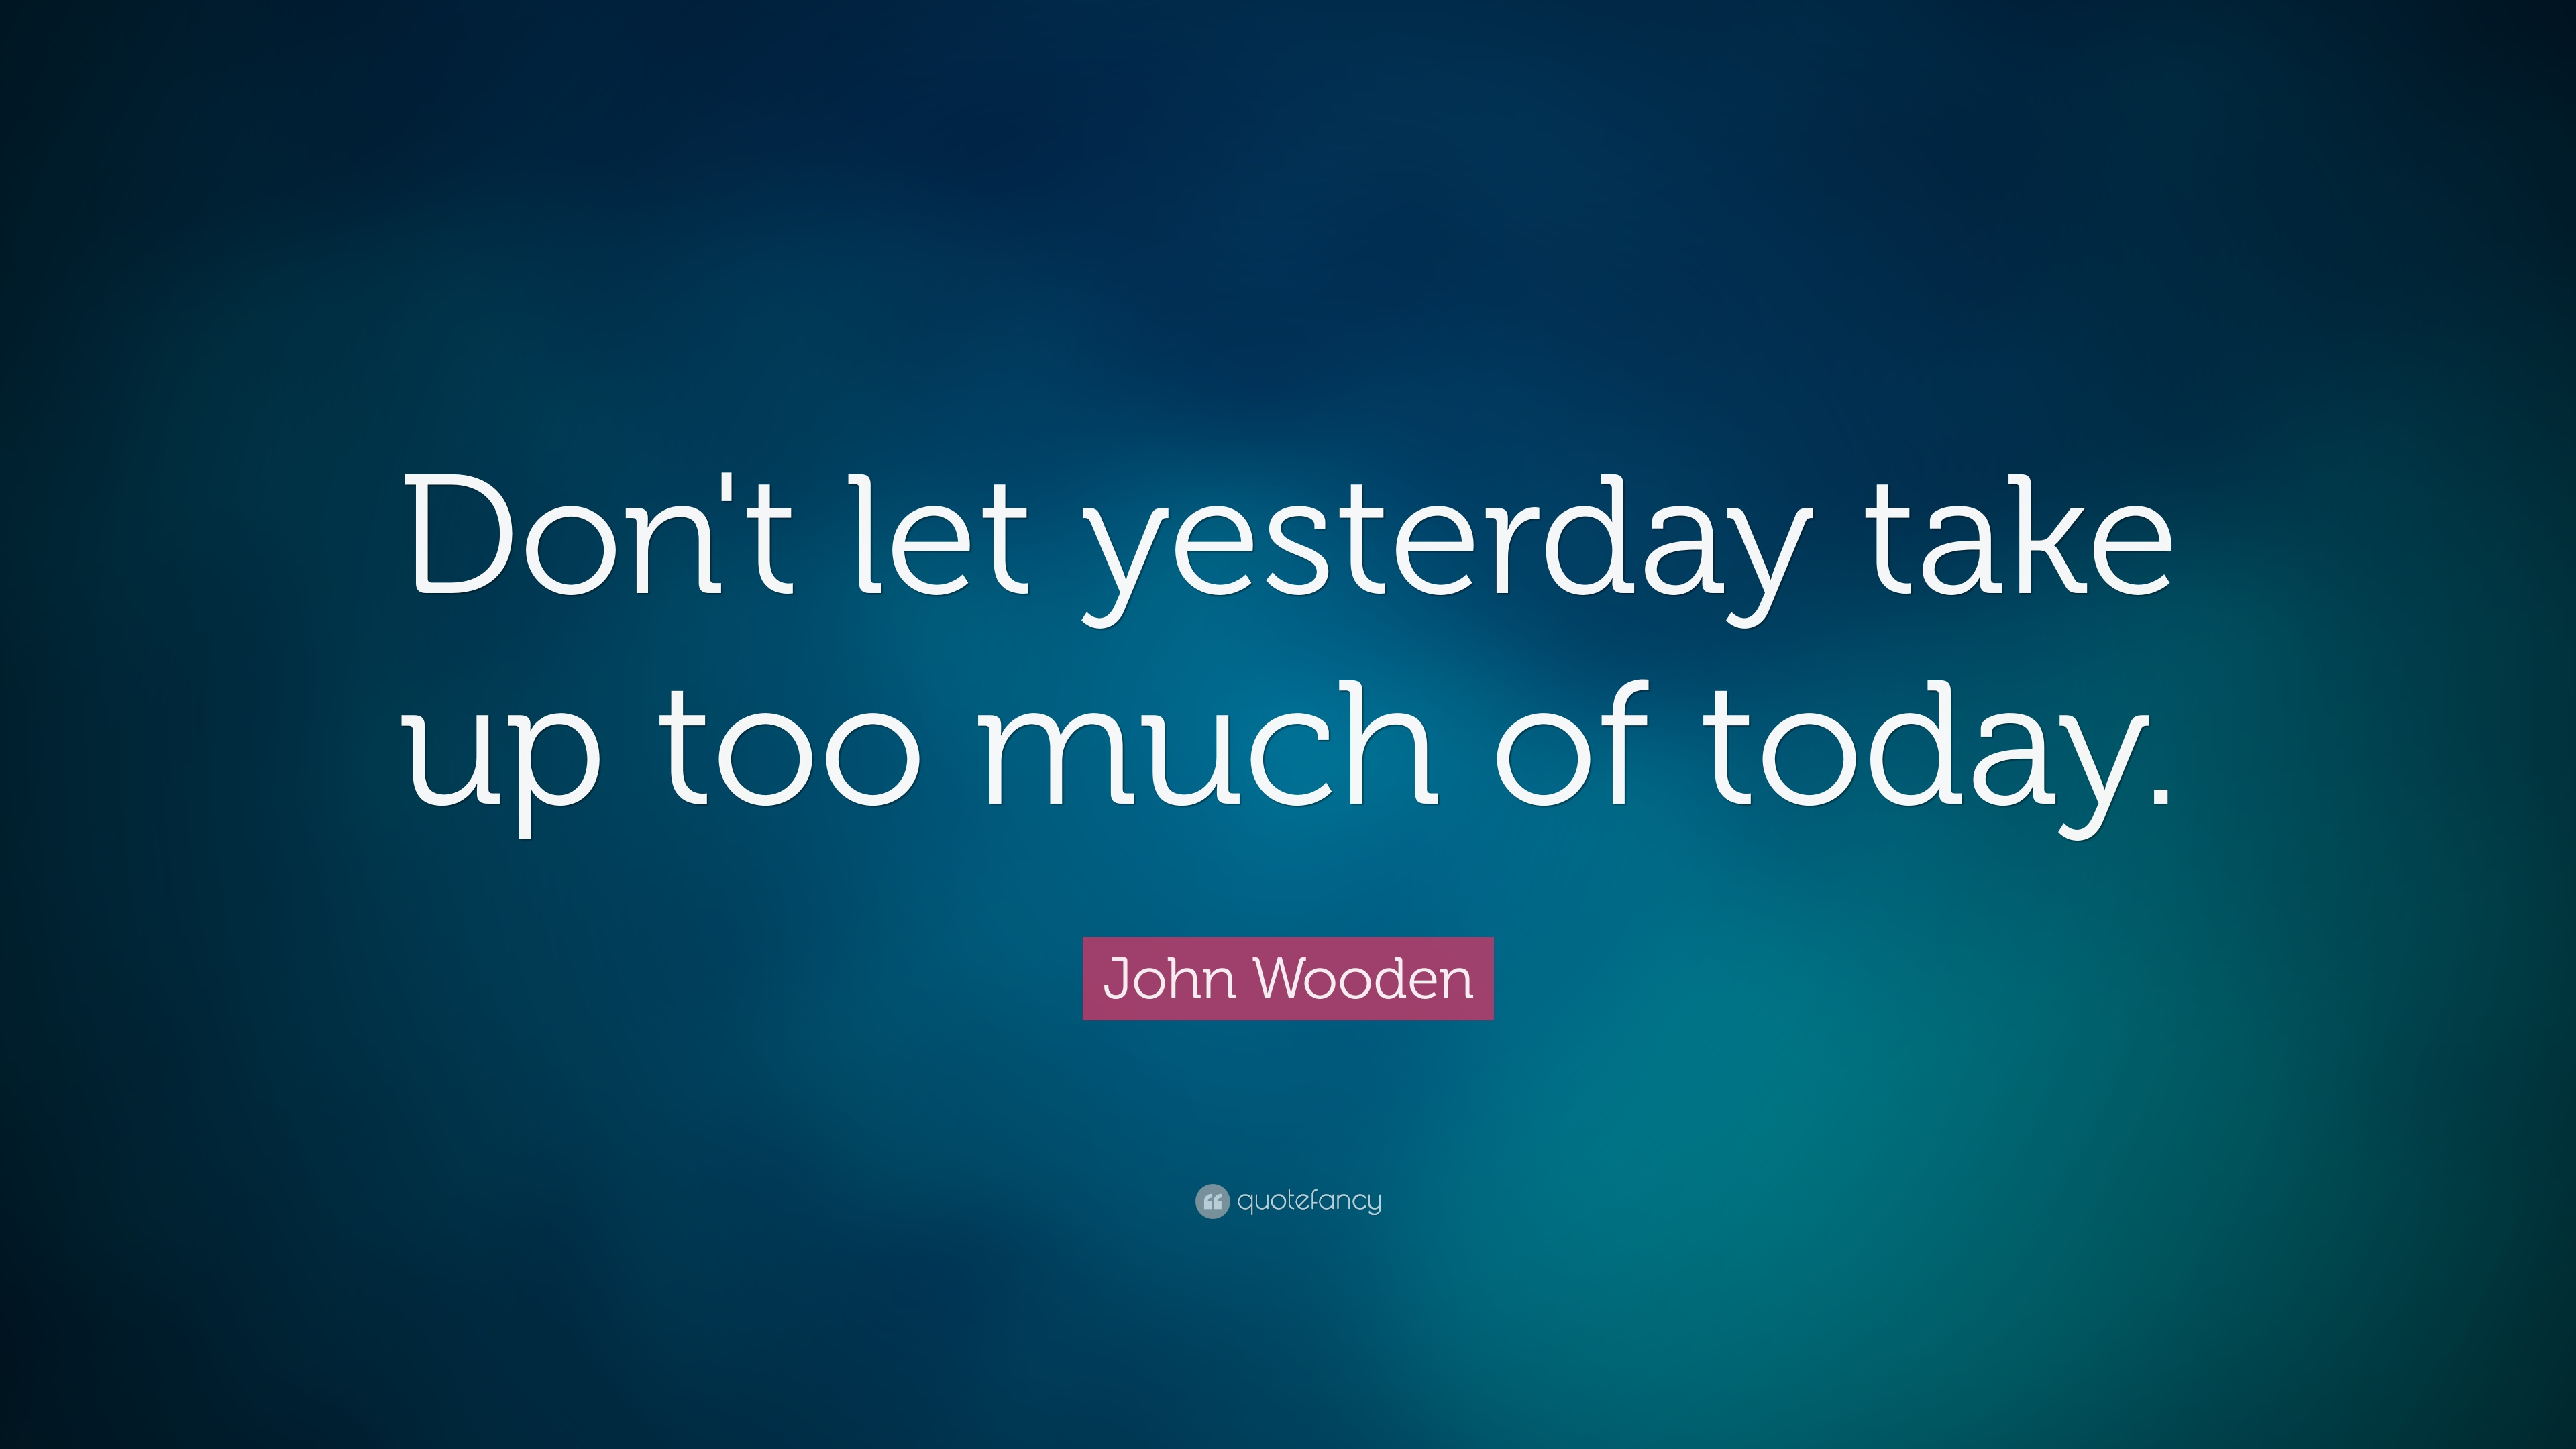 Theodore Roosevelt Wallpaper Quote John Wooden Quote Don T Let Yesterday Take Up Too Much